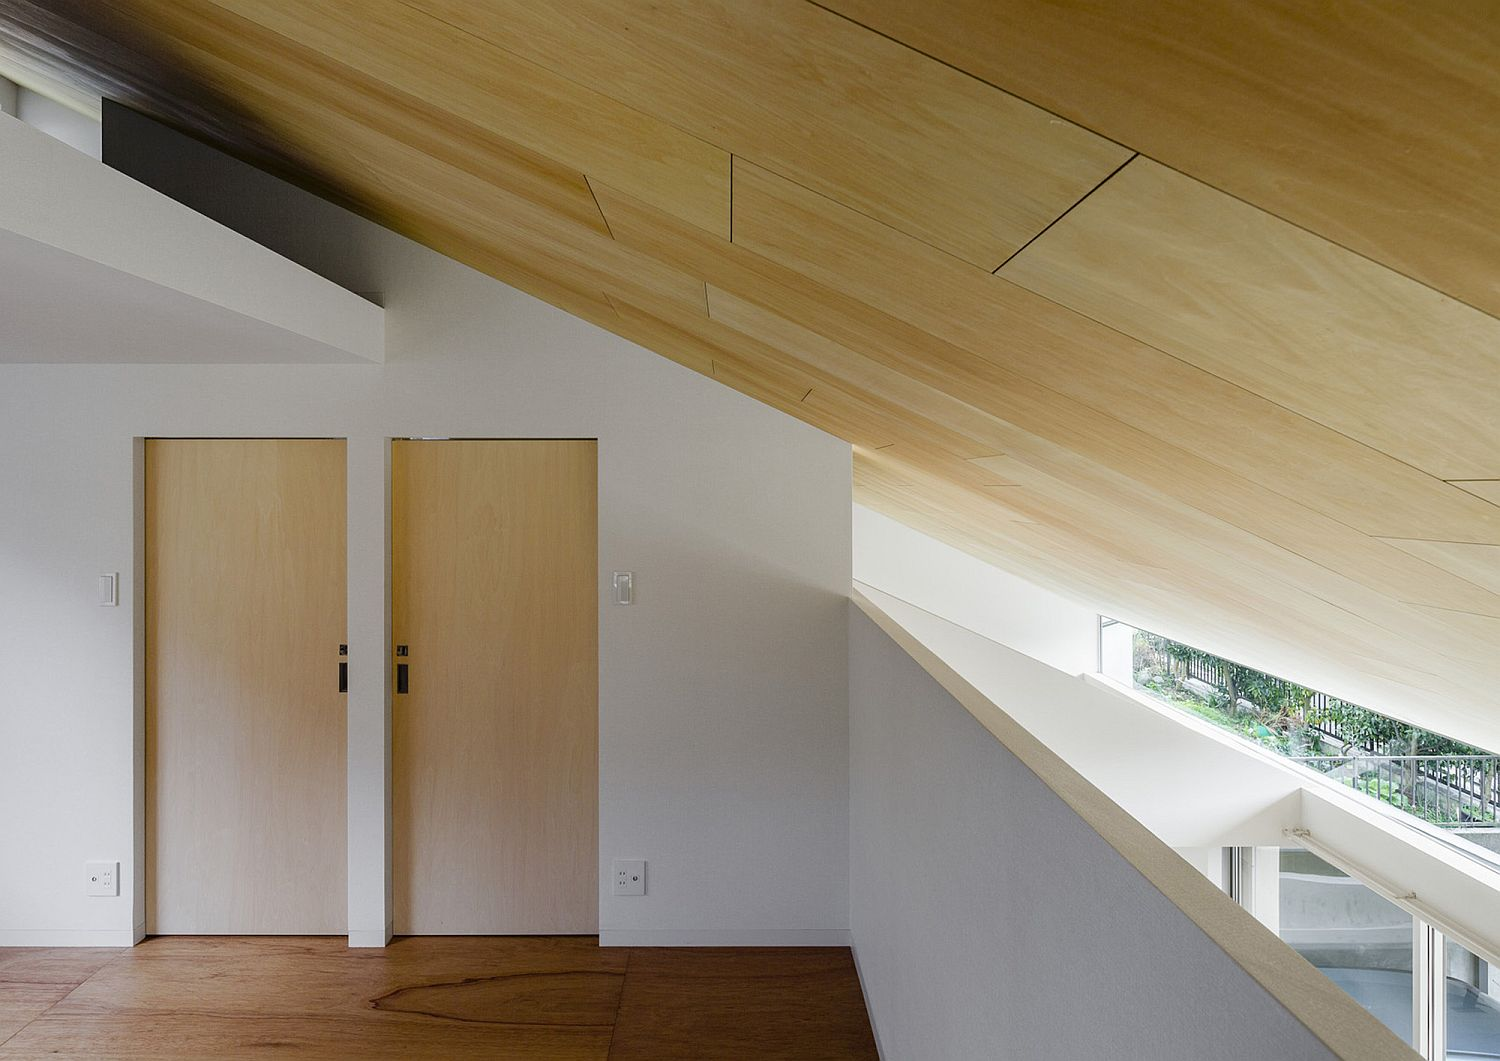 Slanted wooden ceiling of the house adds uniqueness to the home